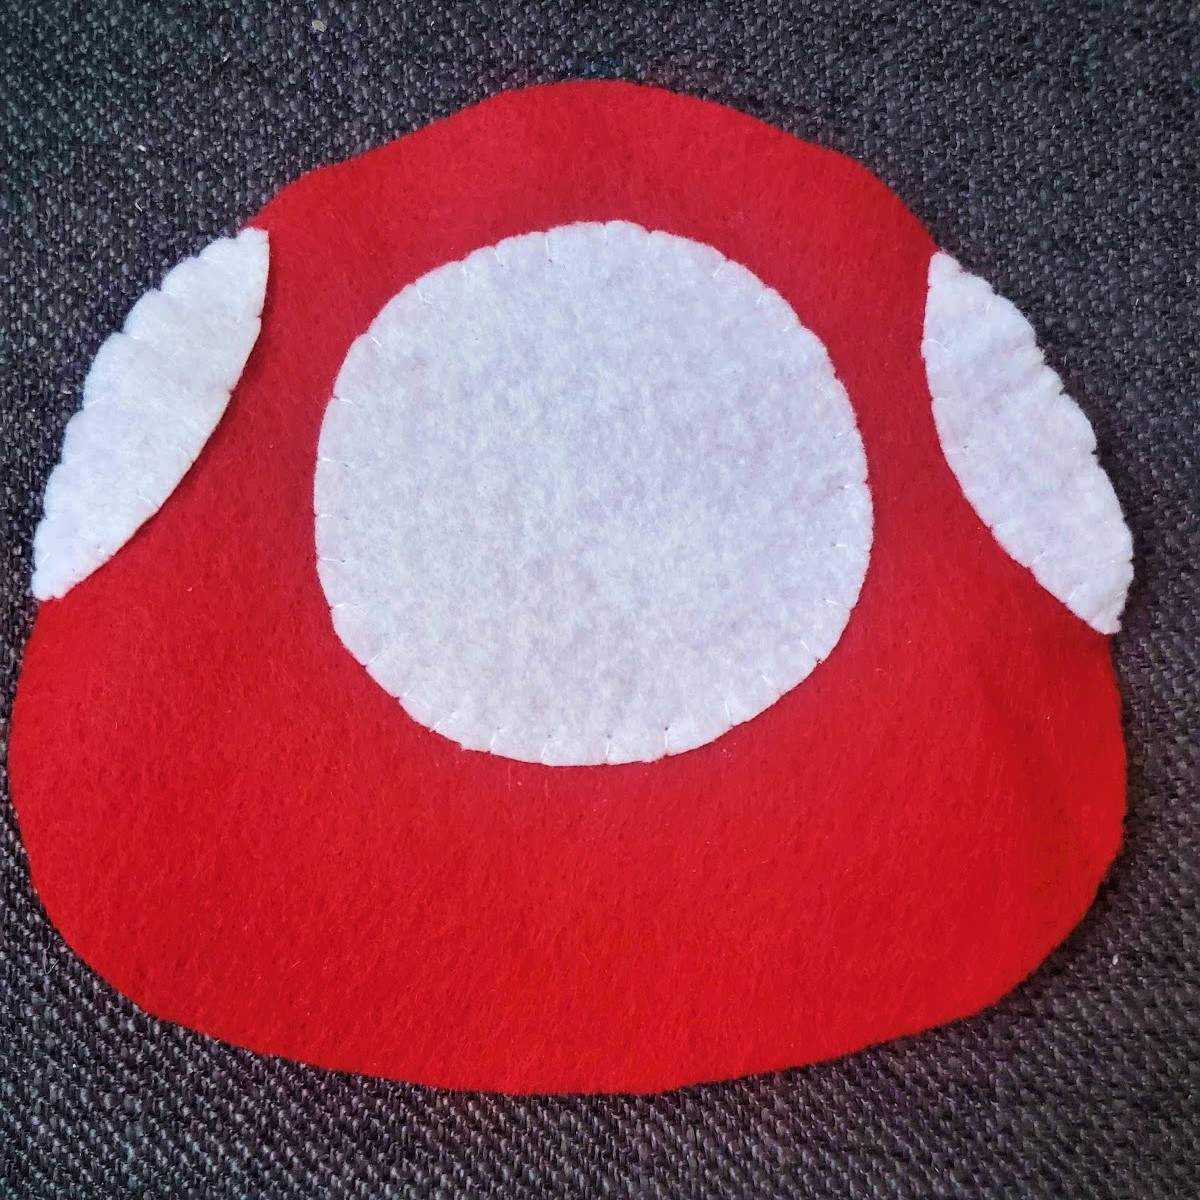 Image of white spots attached to red mushroom top